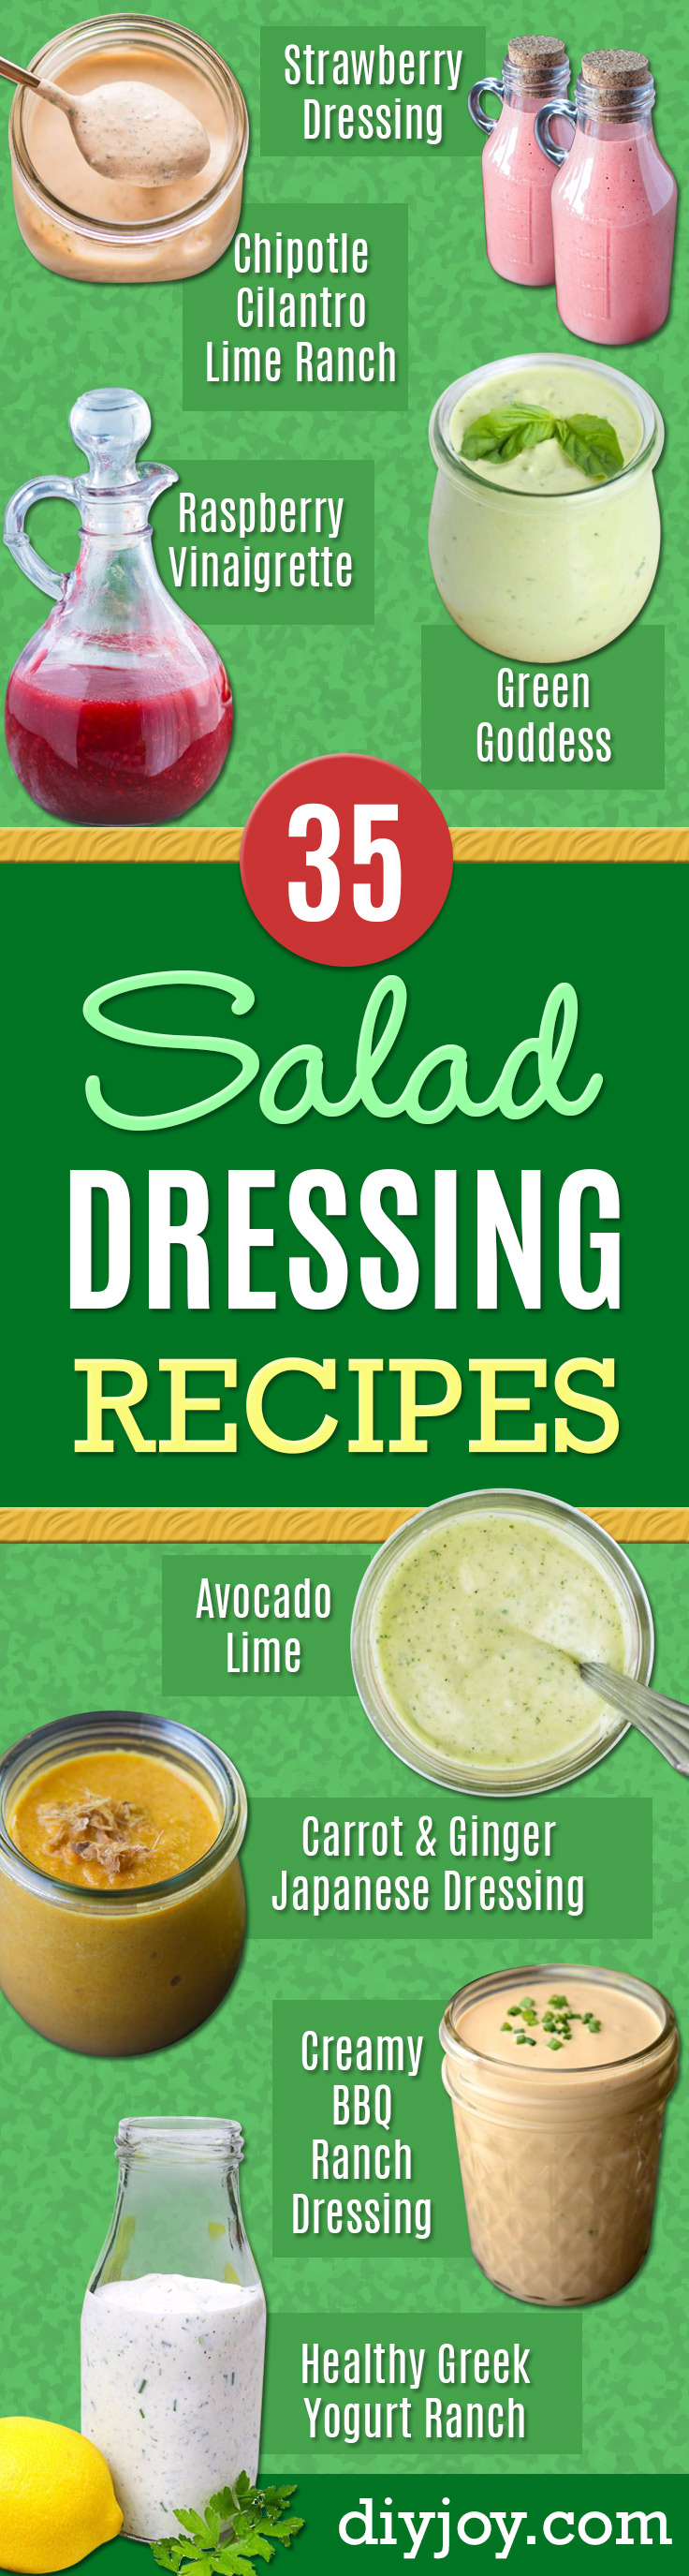 Best Homemade Salad Dressing Recipes - Healthy, Low Calorie and Easy Recipes for Creamy Homeade Dressings - How To Make Vinaigrette, Mango, Greek, Paleo, Balsamic, Ranch, and Italian Copycat Dressings http://diyjoy.com/best-salad-dressing-recipes